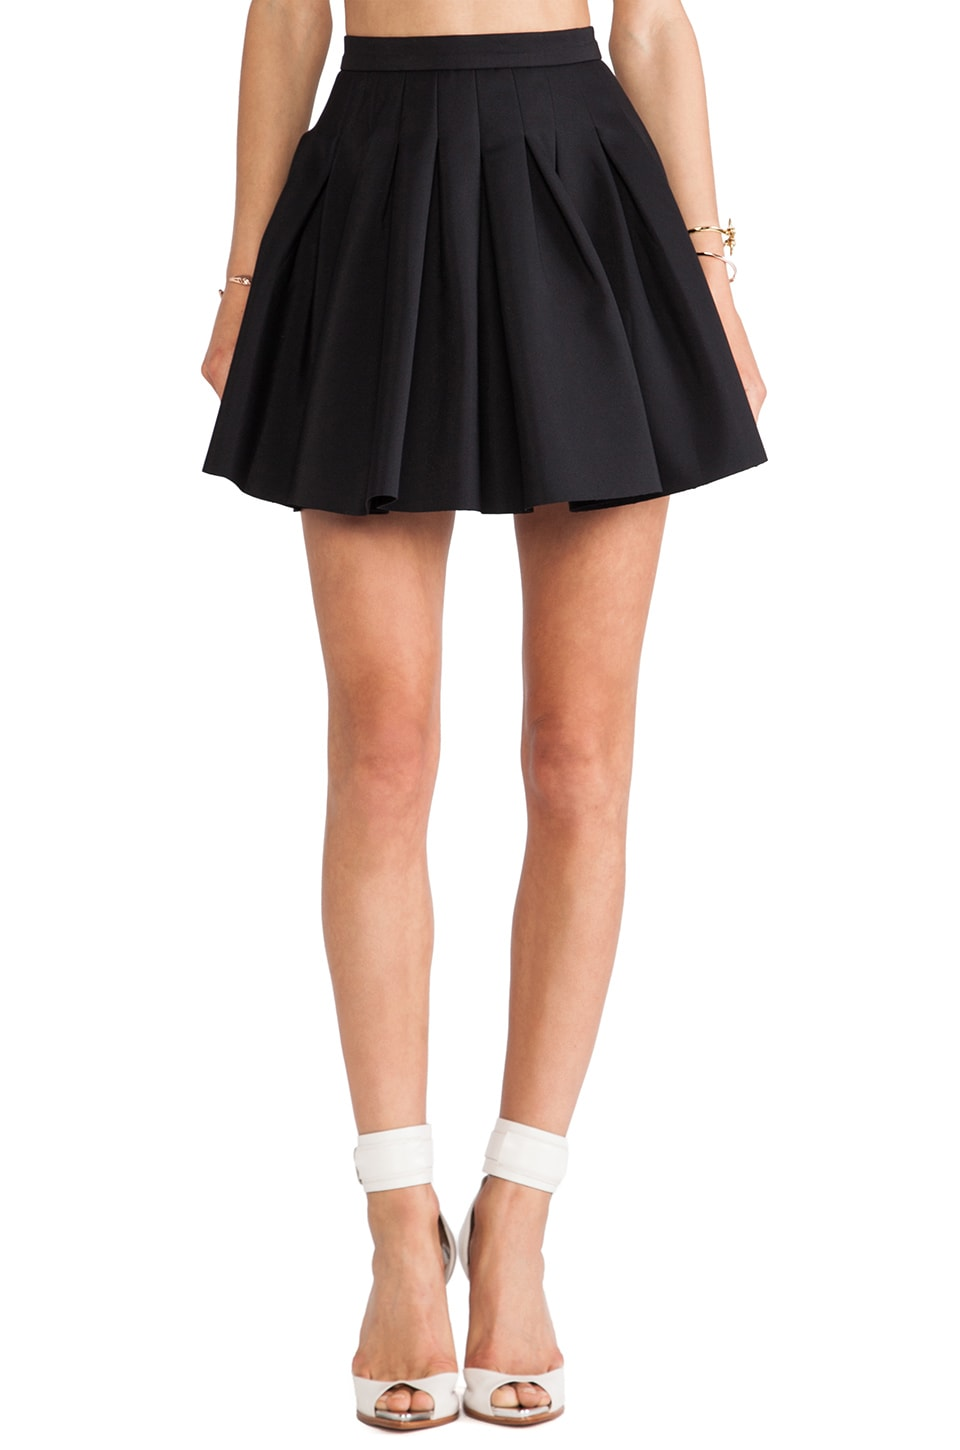 C/MEO One Life Skirt in Black